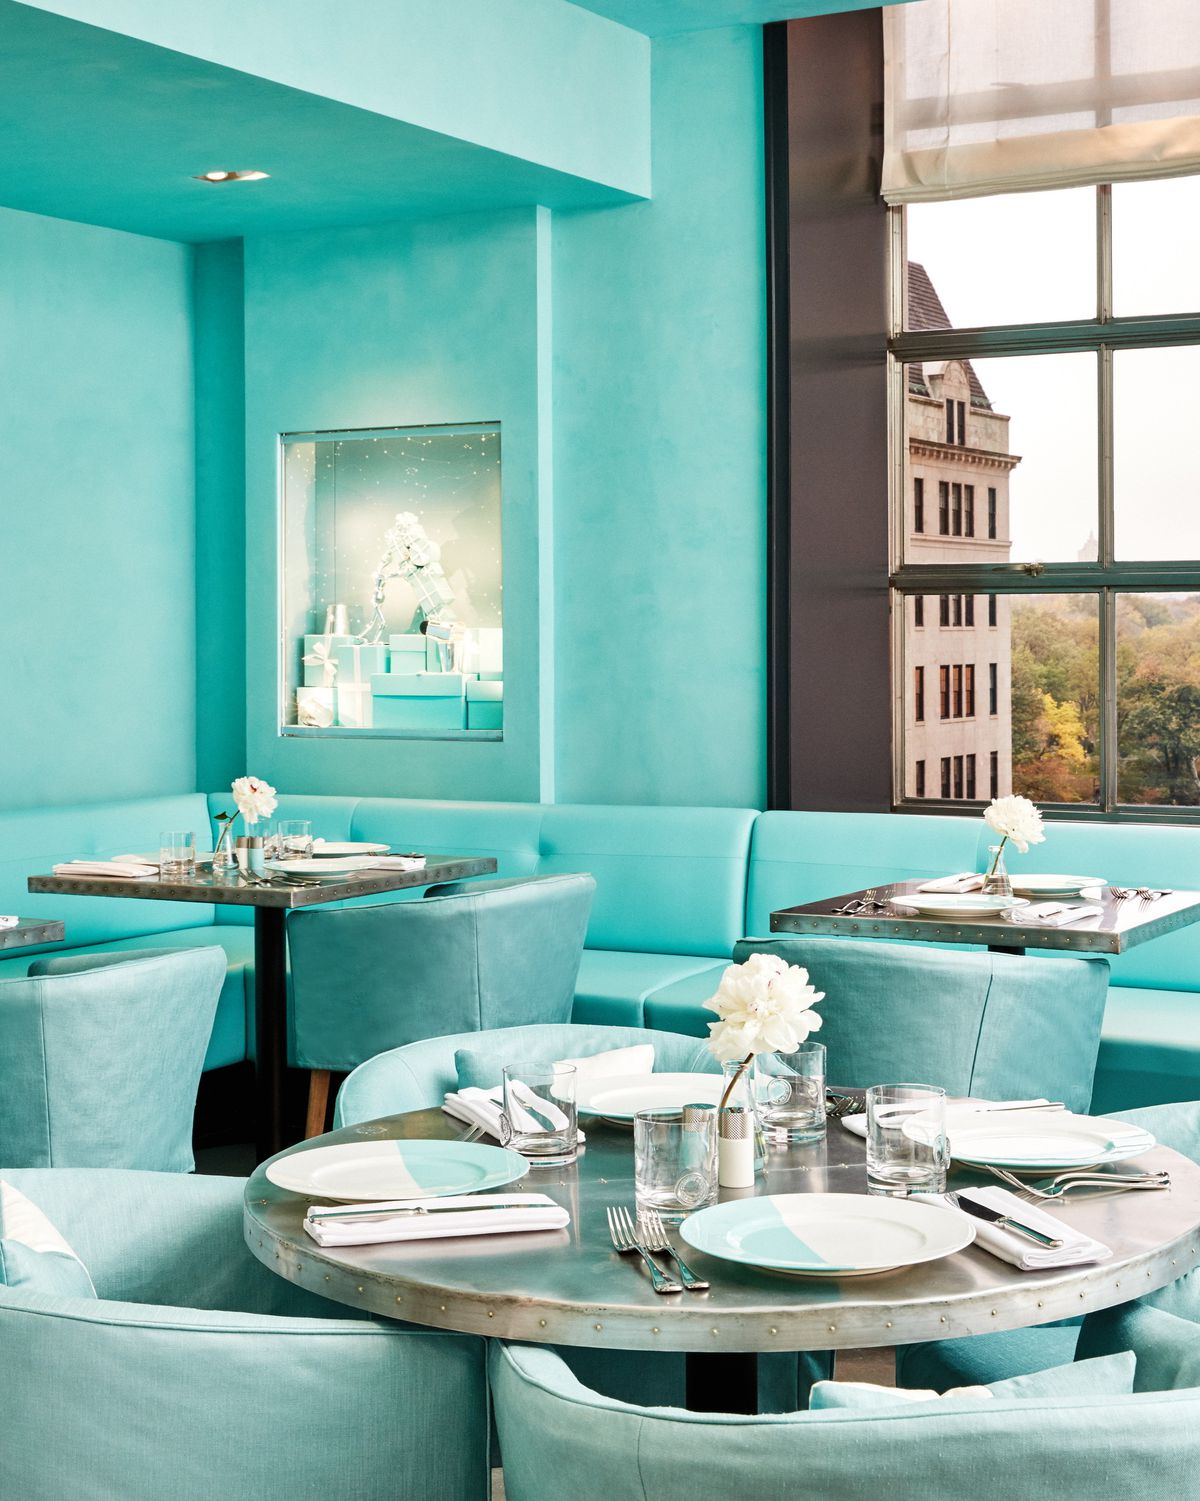 The interior of the Tiffany & Co. cafe on Fifth Avenue